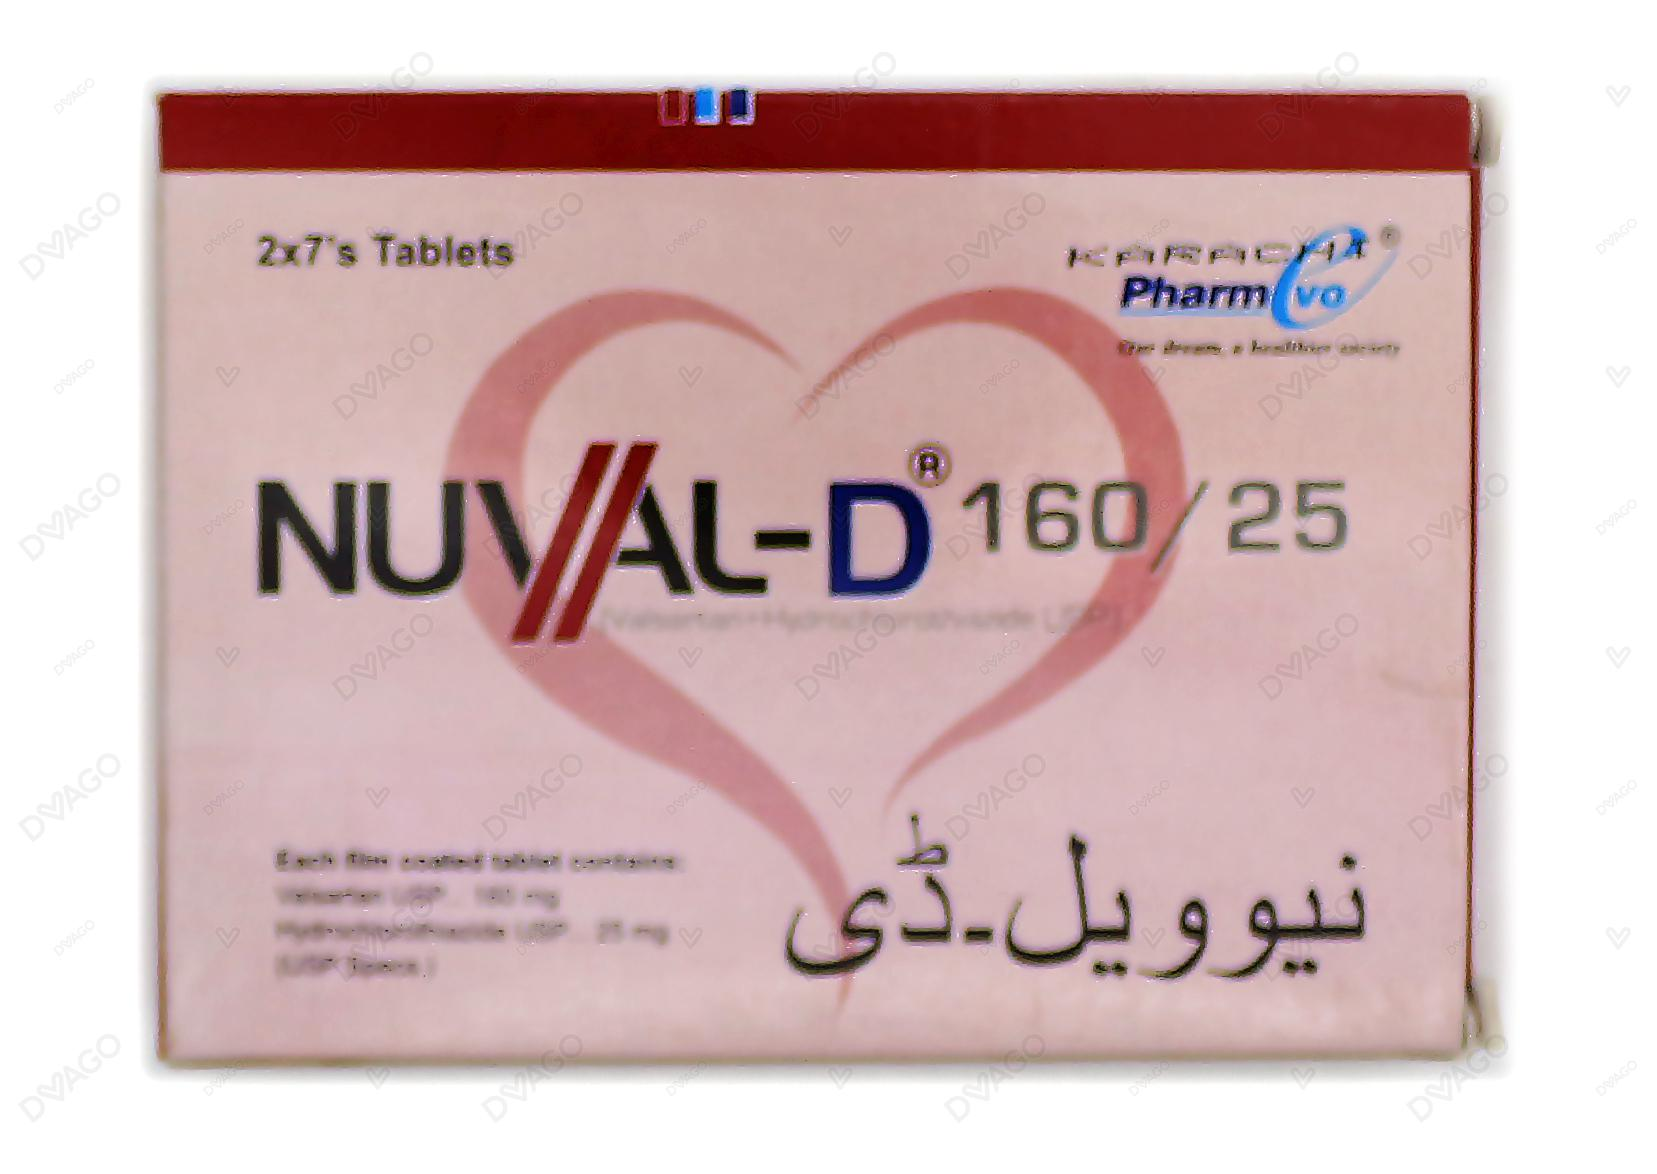 Nuval D Tablets 160/25mg 14's